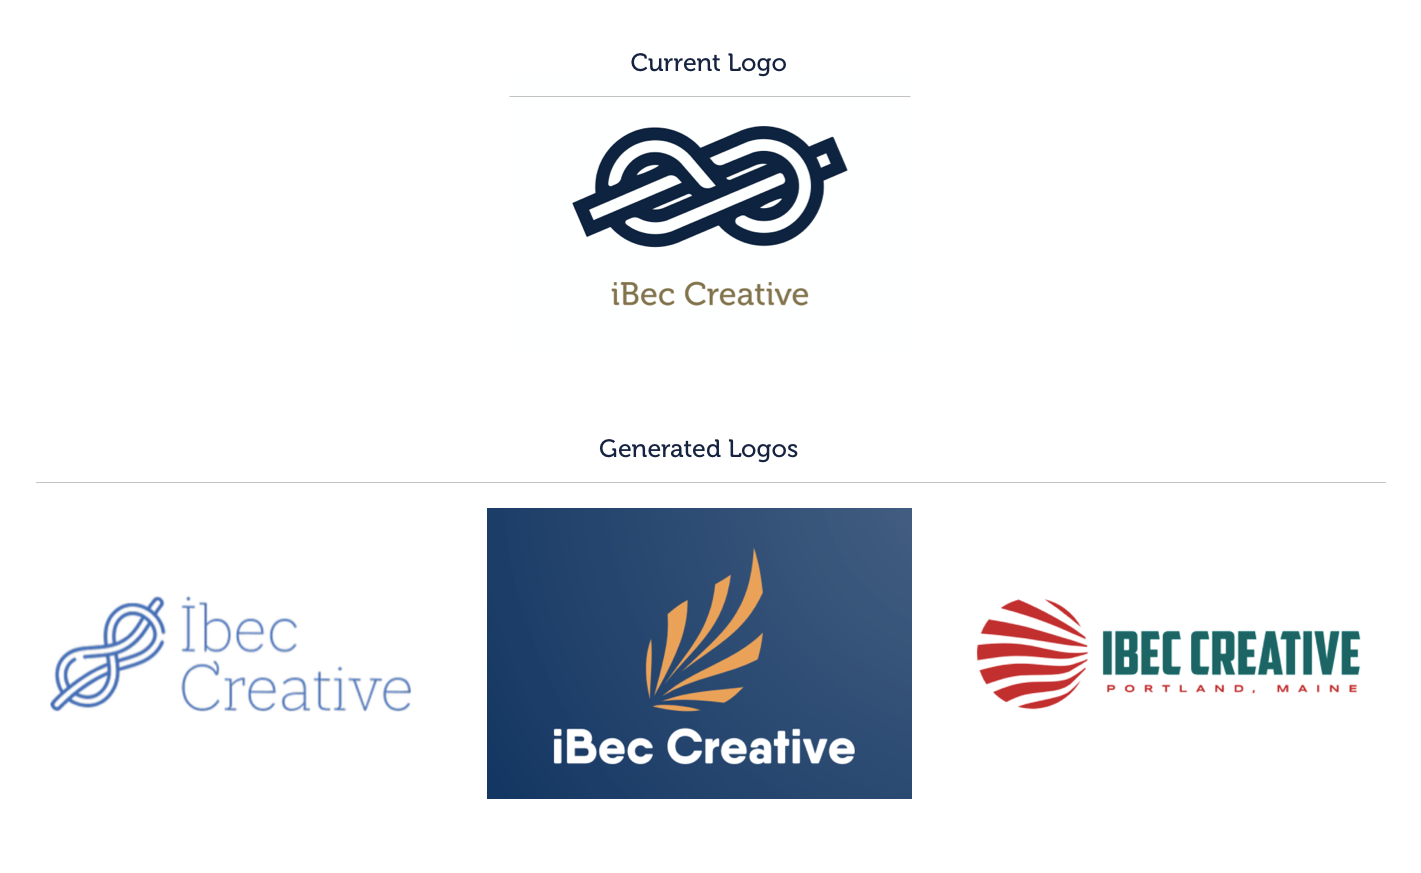 The current iBec logo above three, different generated logos. The first has blue figure eight knot, the second sits on a navy background with an abstract leaf shape, and the third is red and teal with a circle of abstract waves.